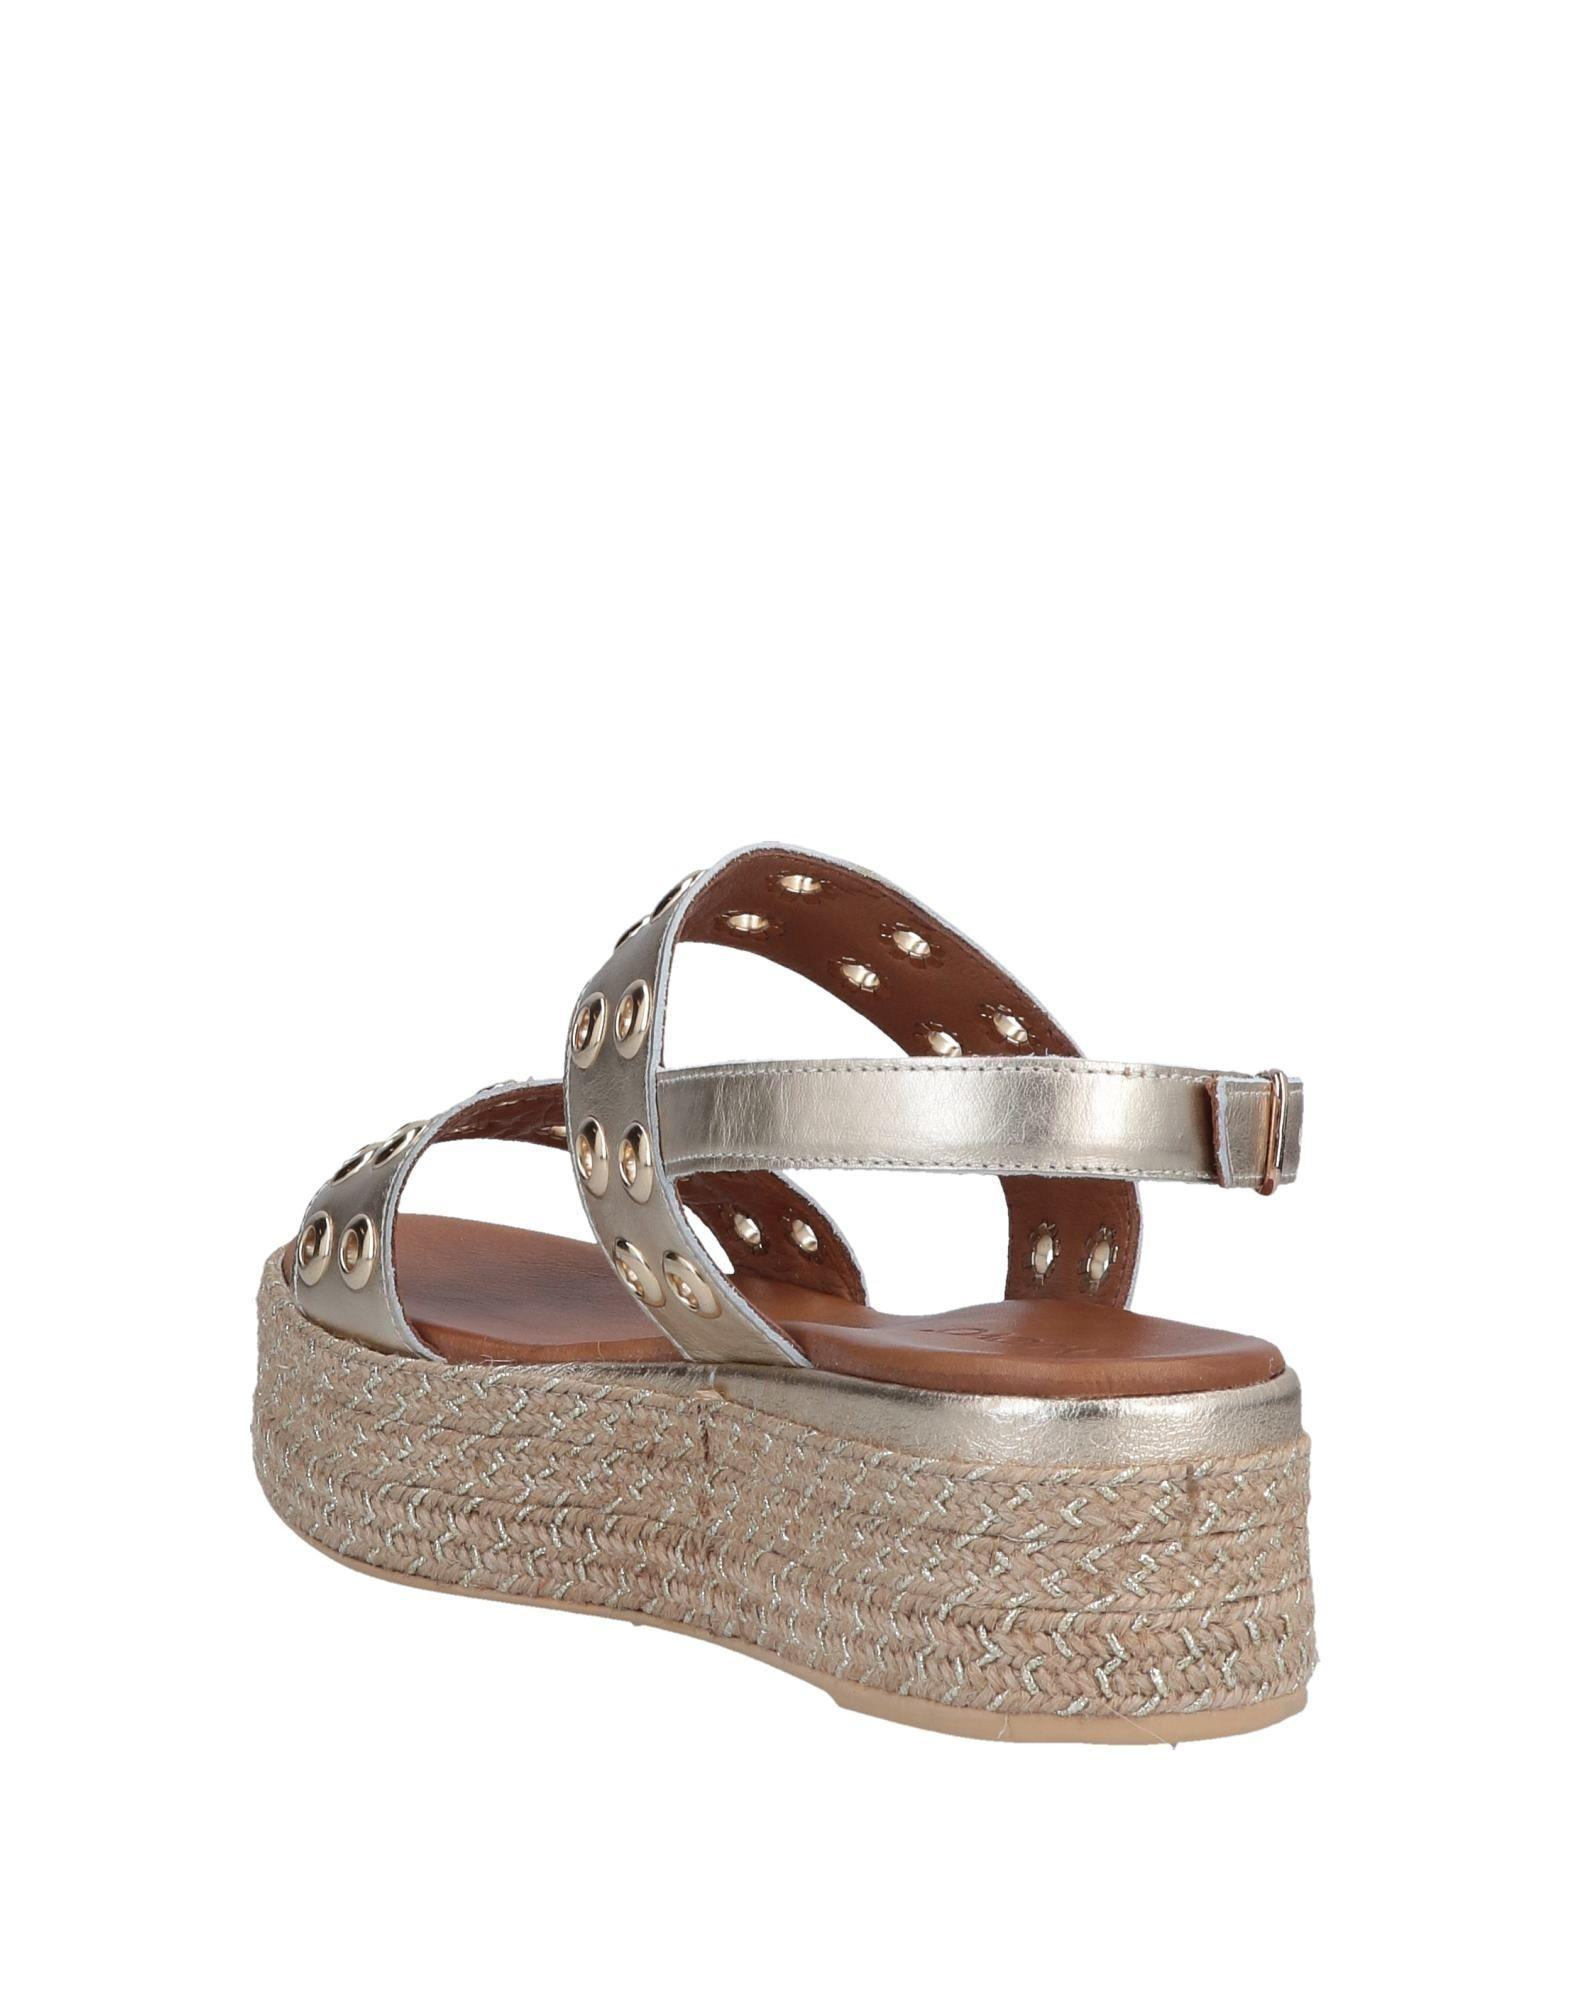 7dee45cc9b5d Lyst - Inuovo Sandals in Metallic